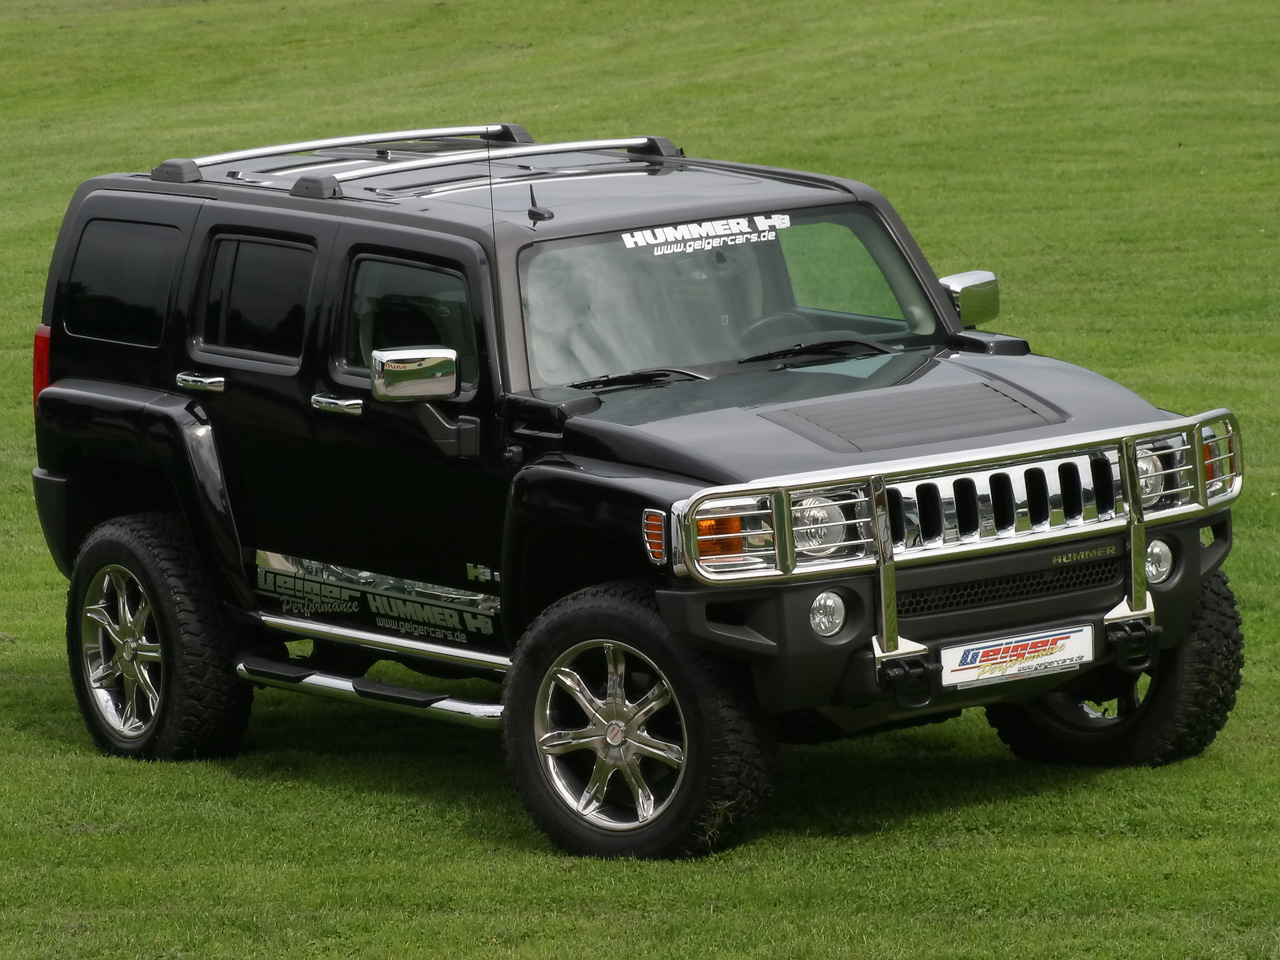 Tuning Hummer Alice Wallpaper For Free Download